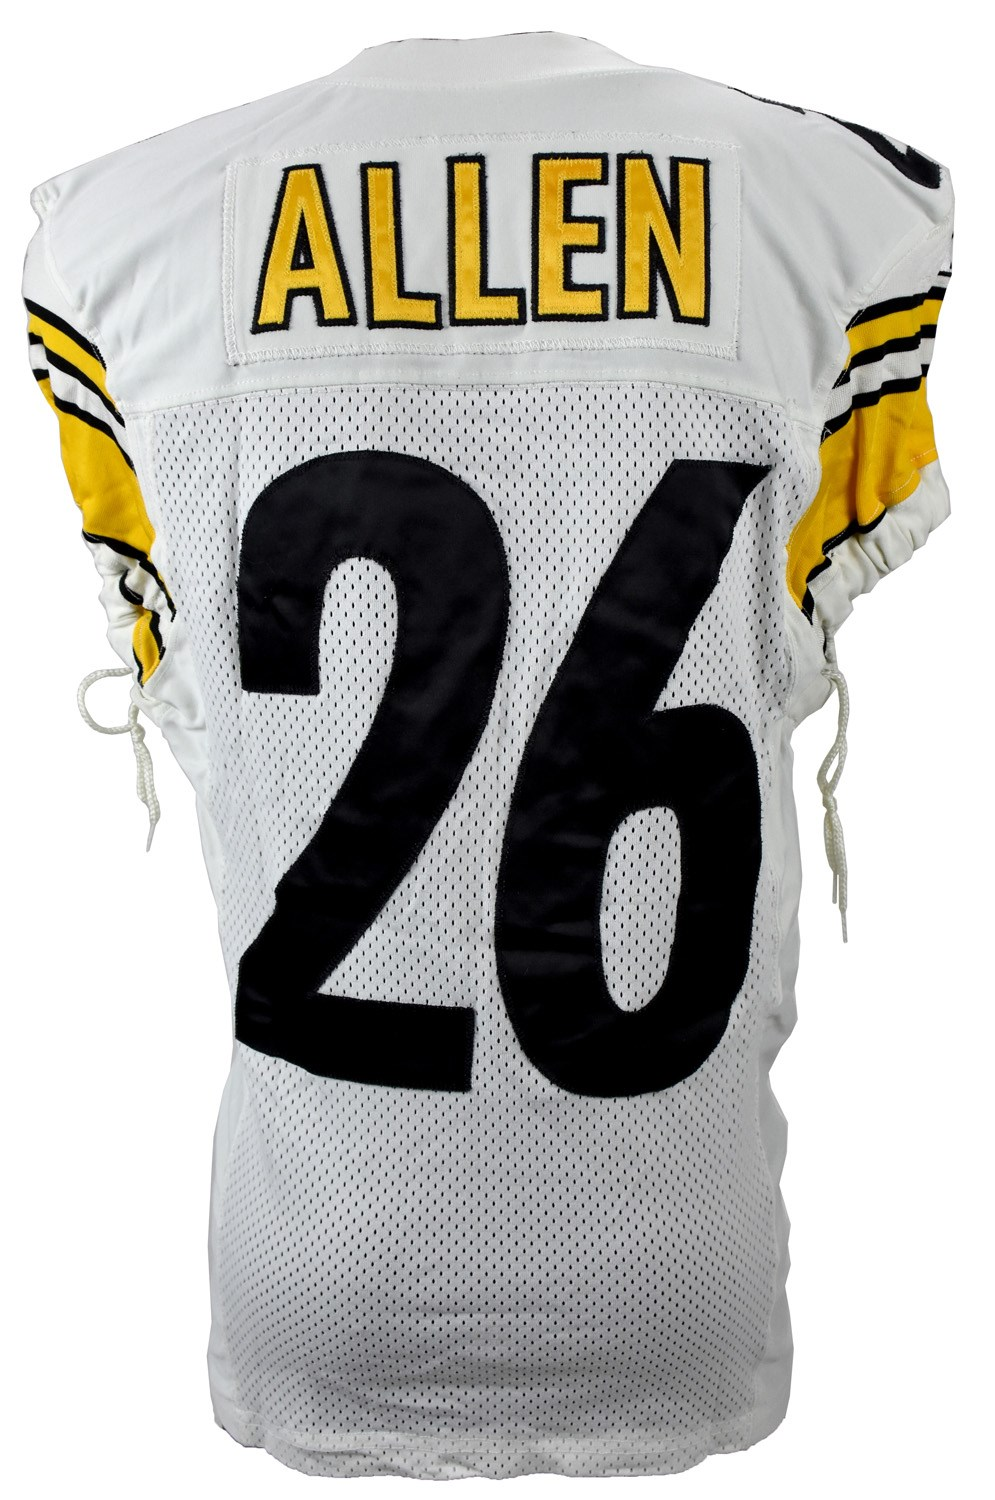 2011 Season Will Allen Pittsburgh Steelers AFC Wild Card Game Worn Jersey (Photo-Matched, Resolution Photomatching LOA)